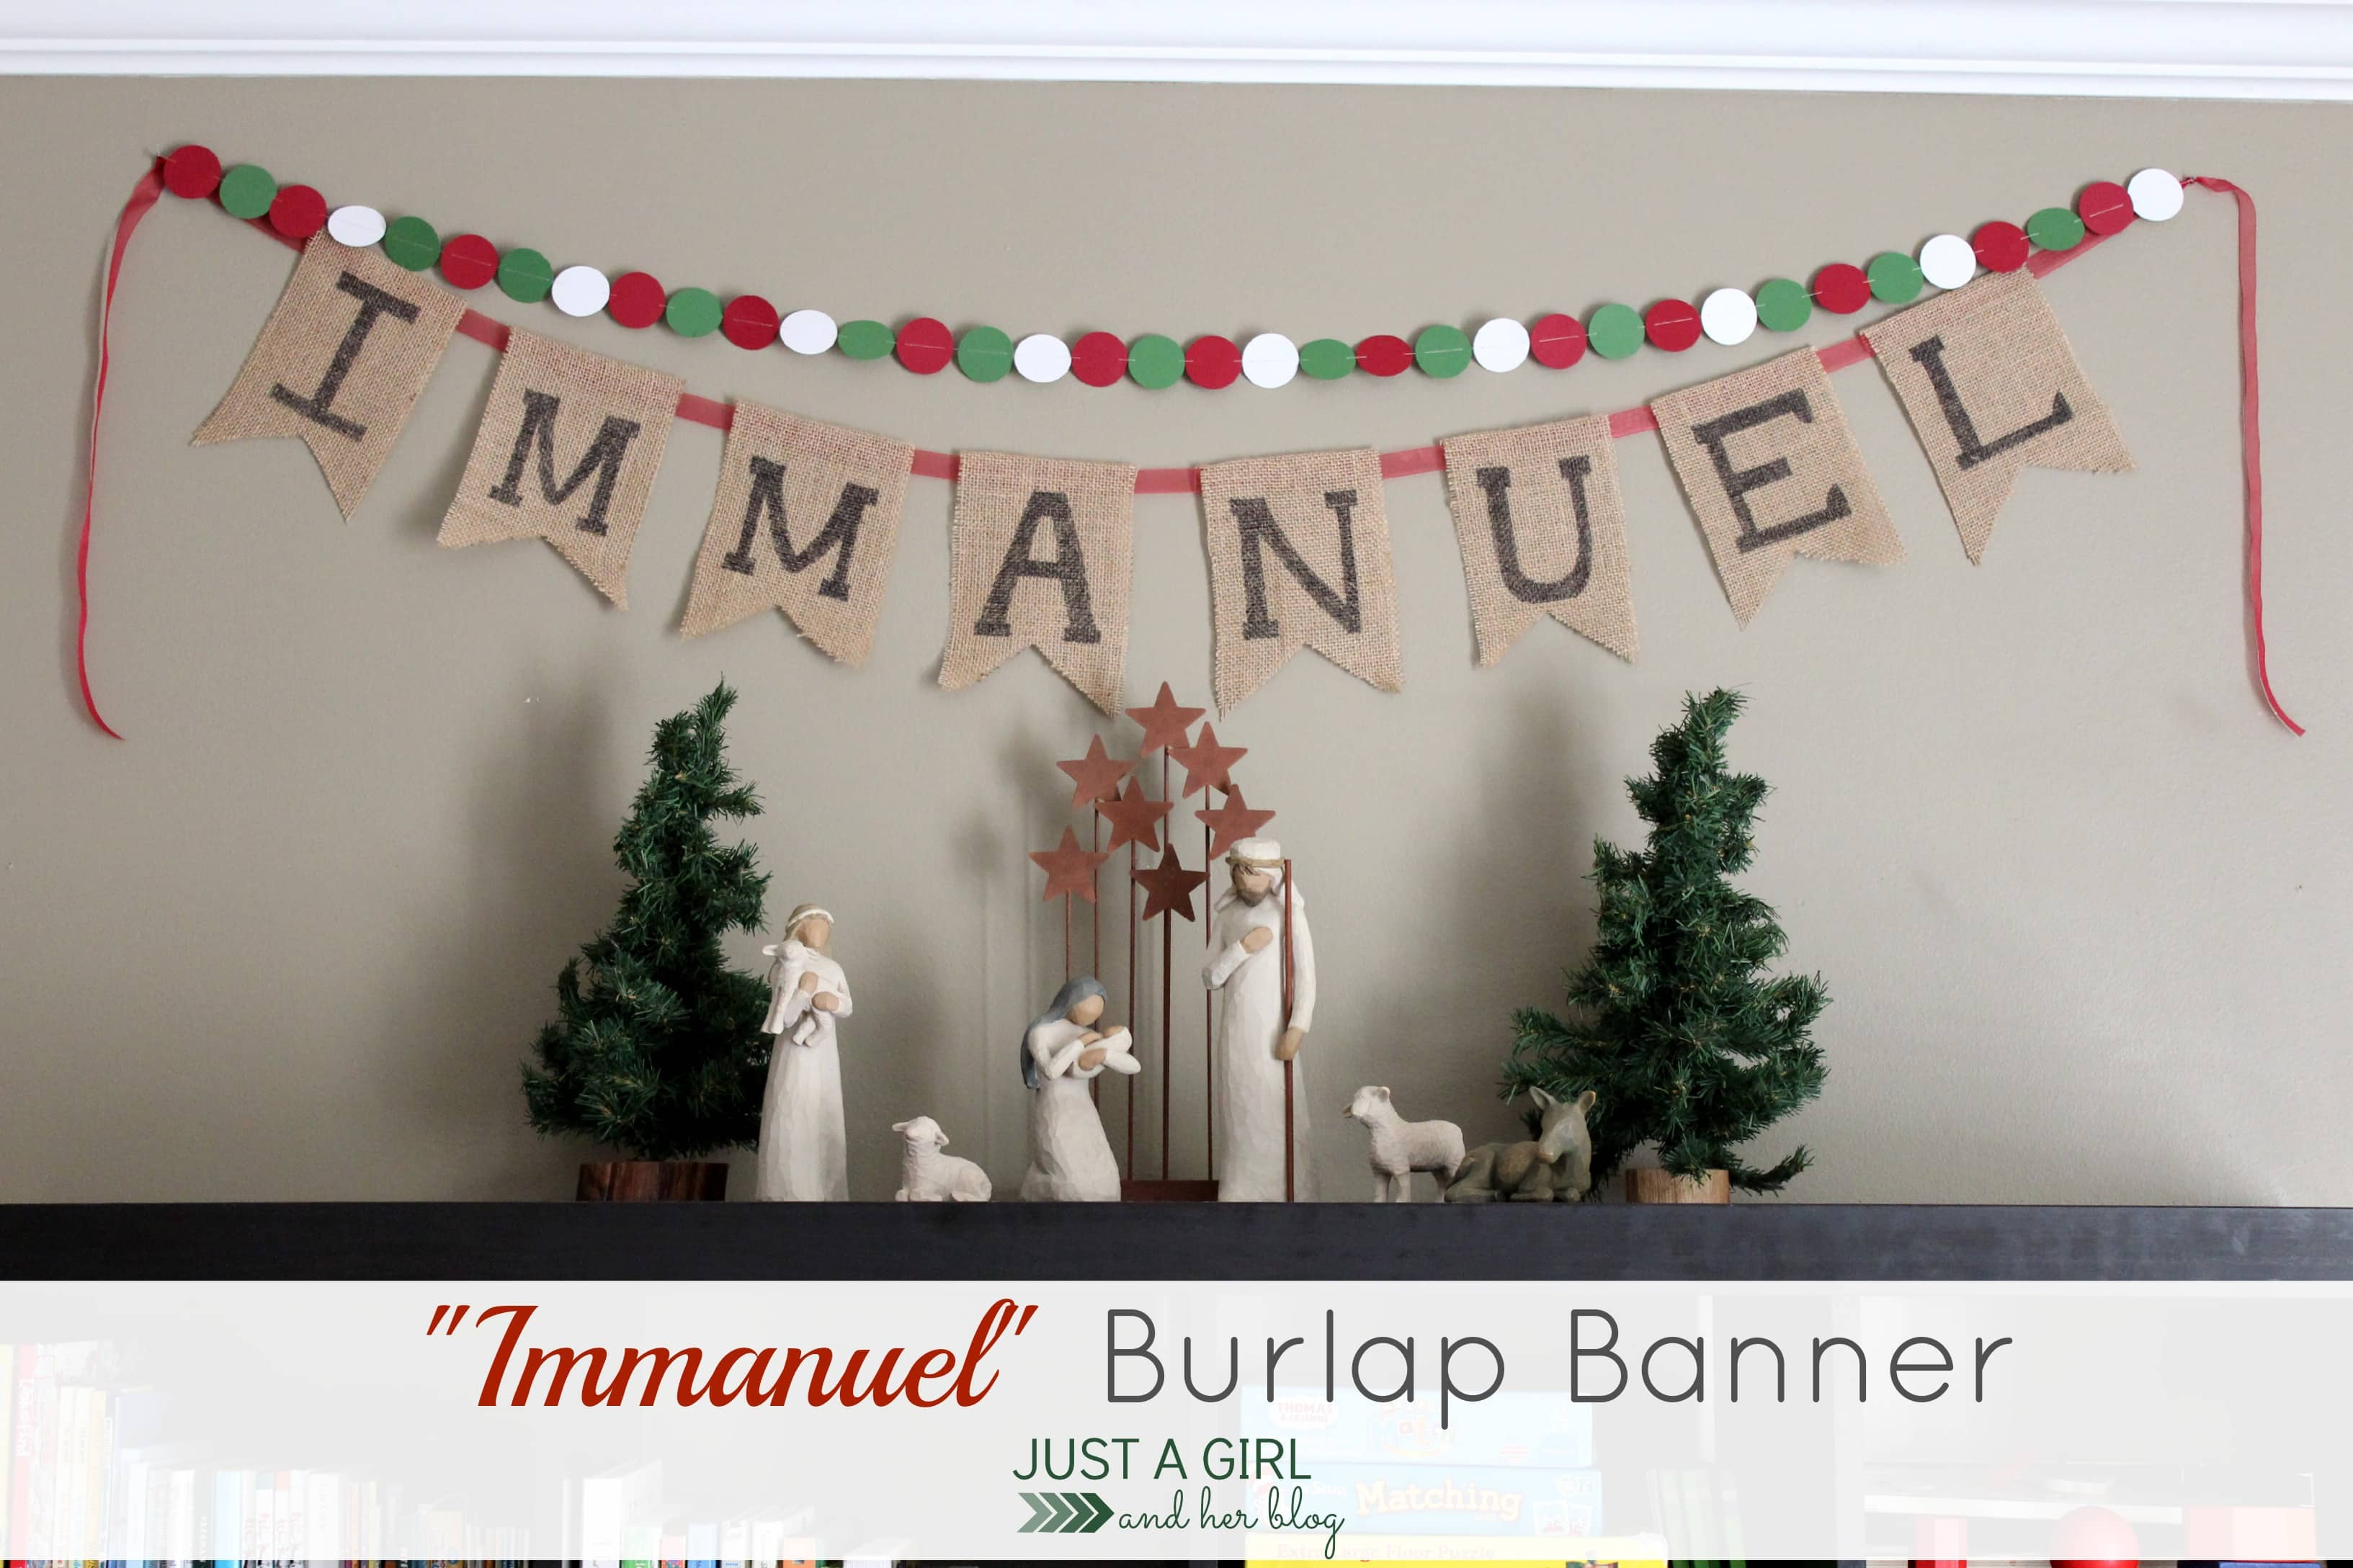 immanuel burlap banner by just a girl and her blog - Burlap Christmas Banner